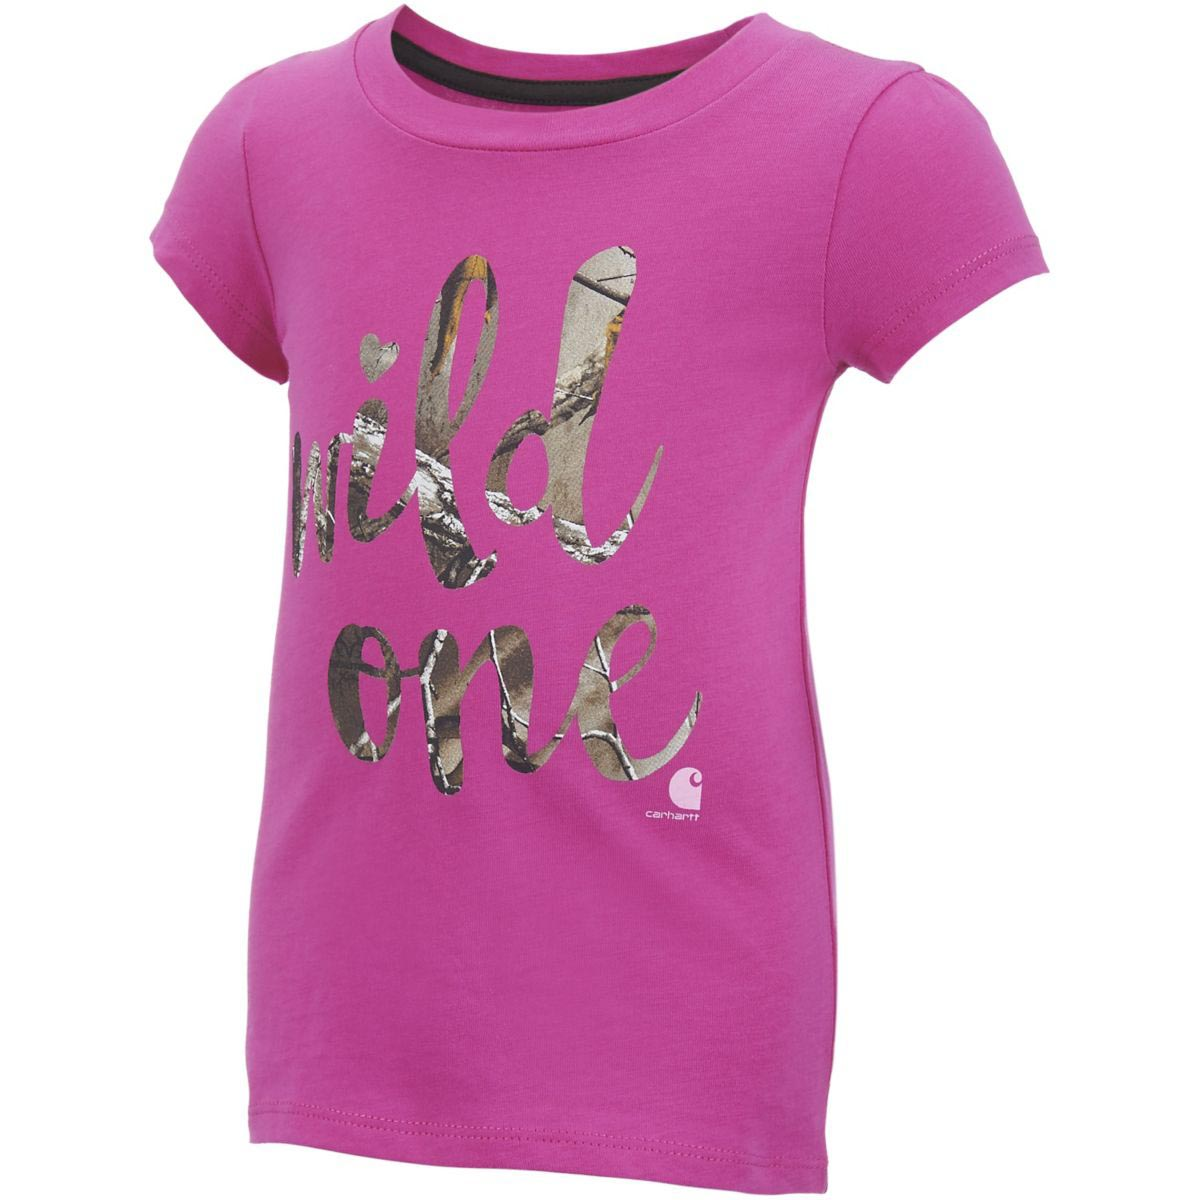 Carhartt Infant and Toddler Girls' Wild One Tee